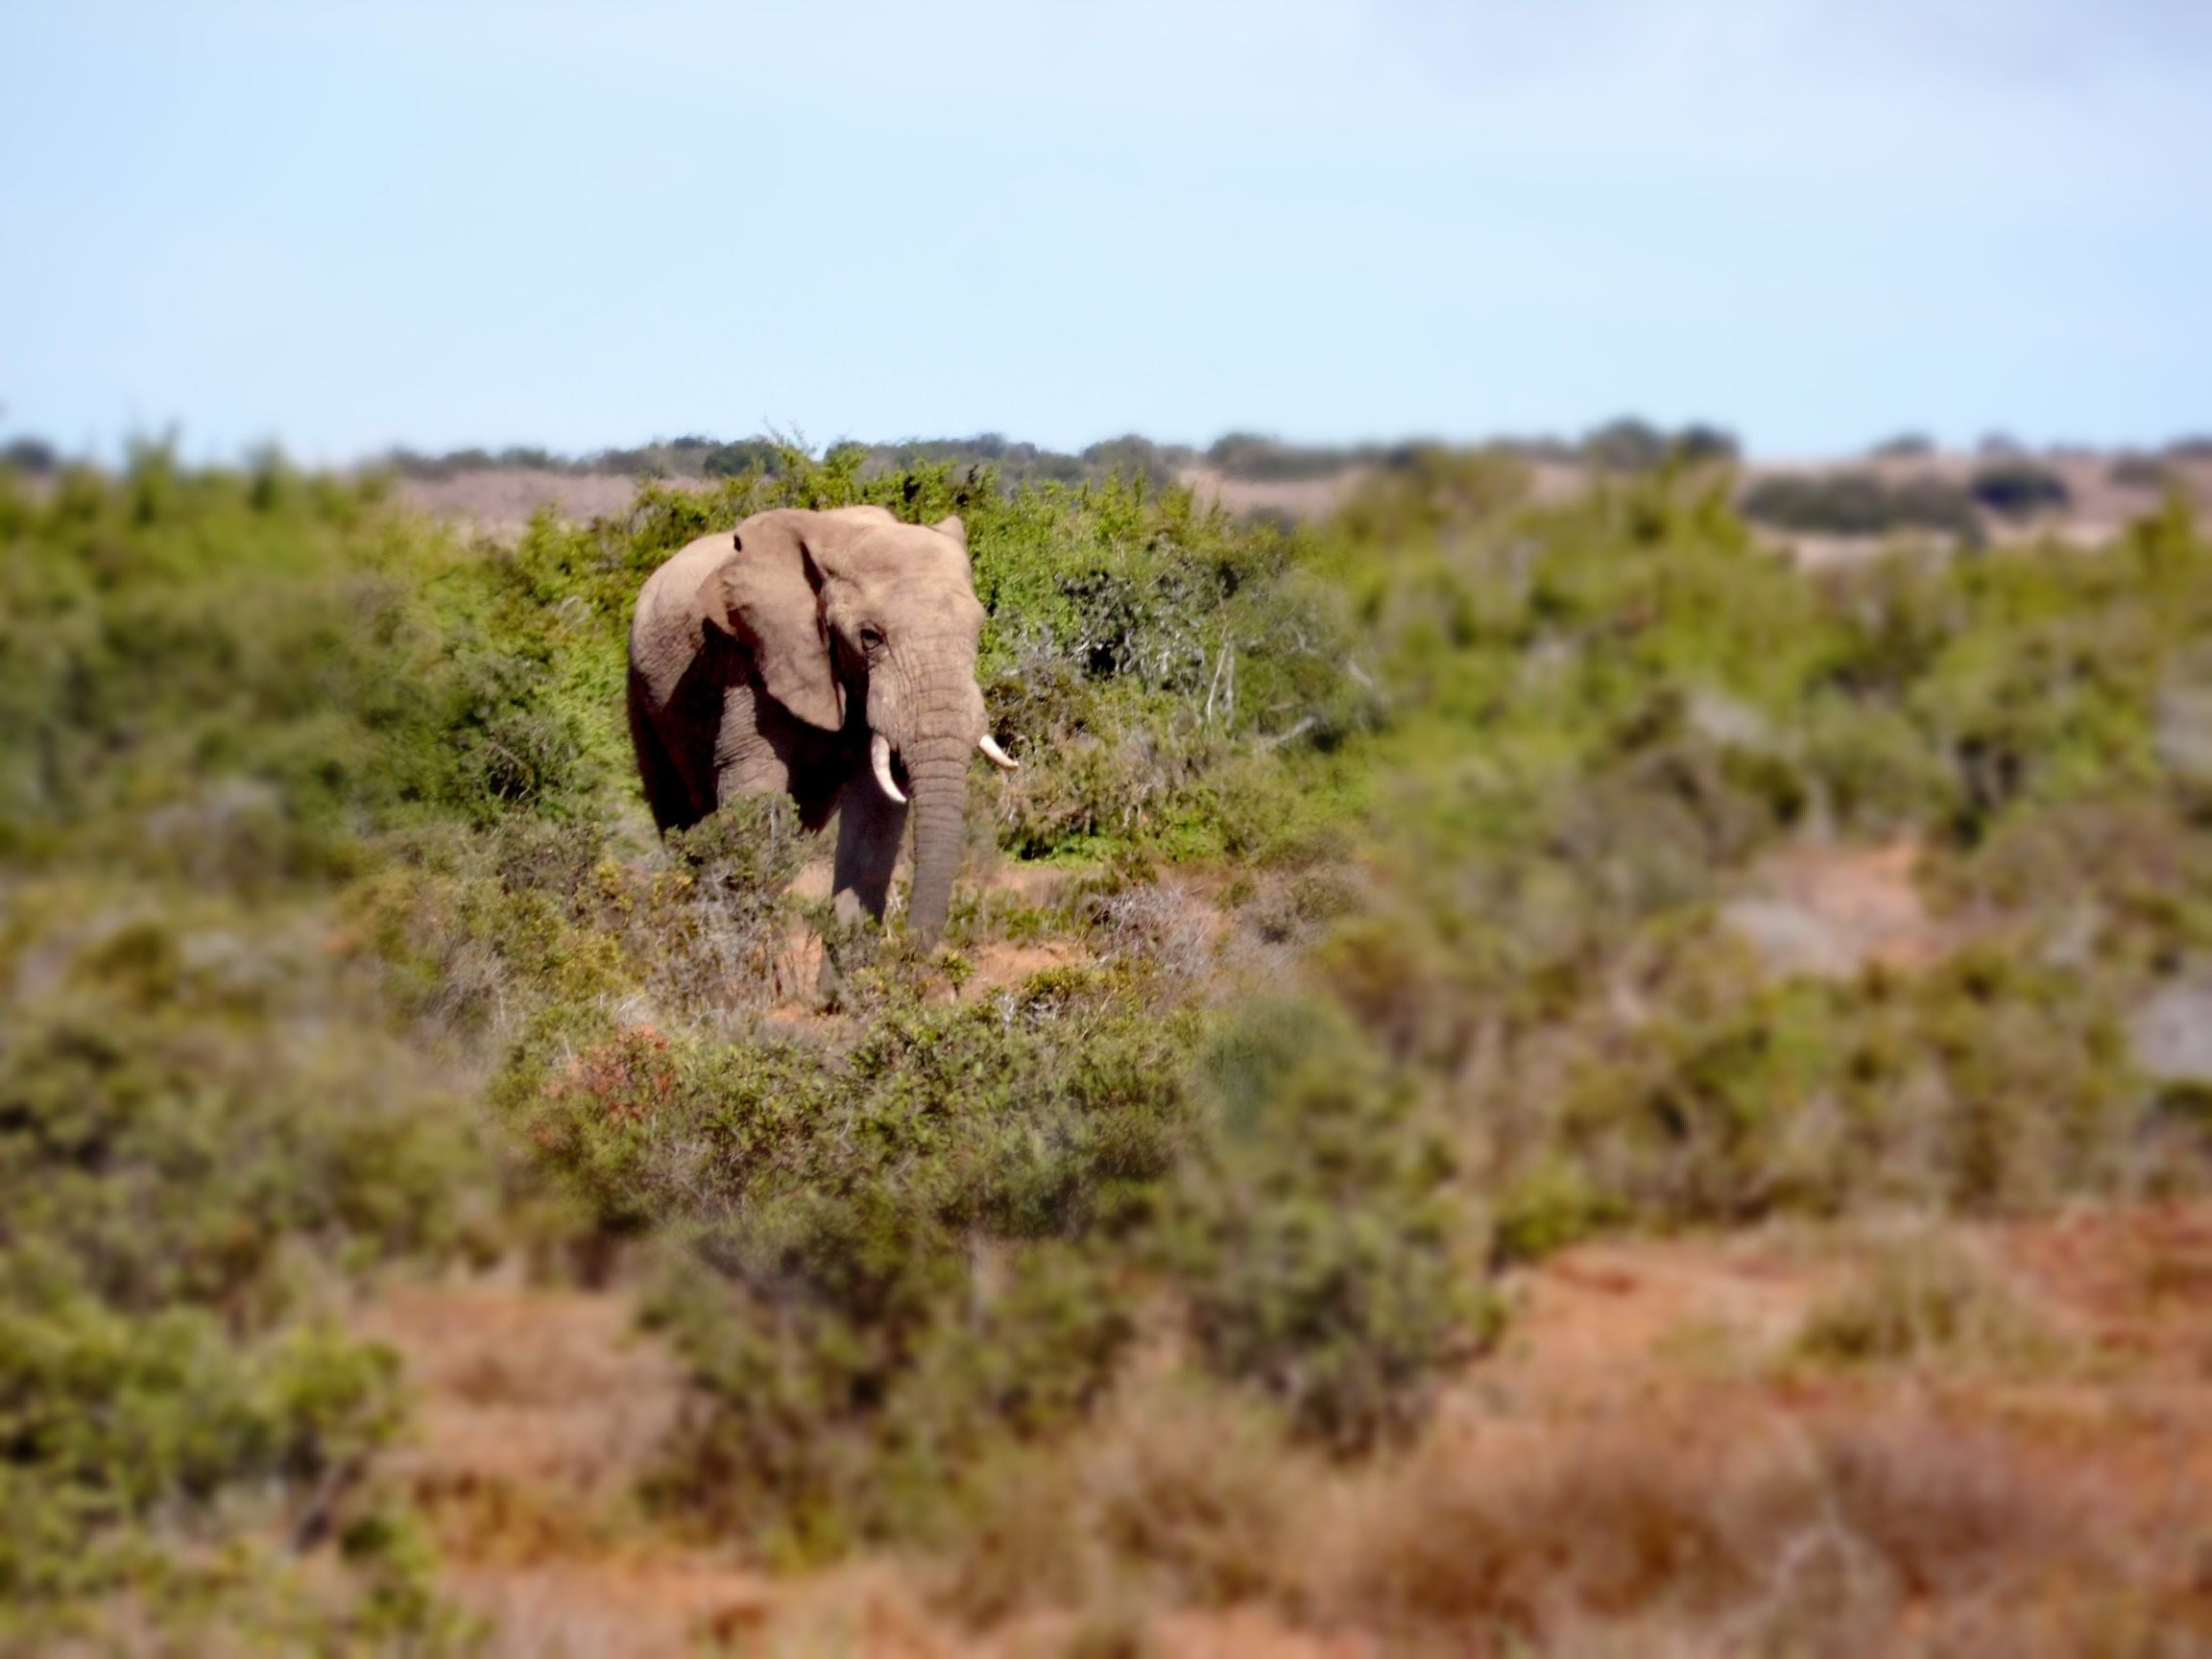 Reasons to Visit Addo Elephant Park - By Megan Kelly